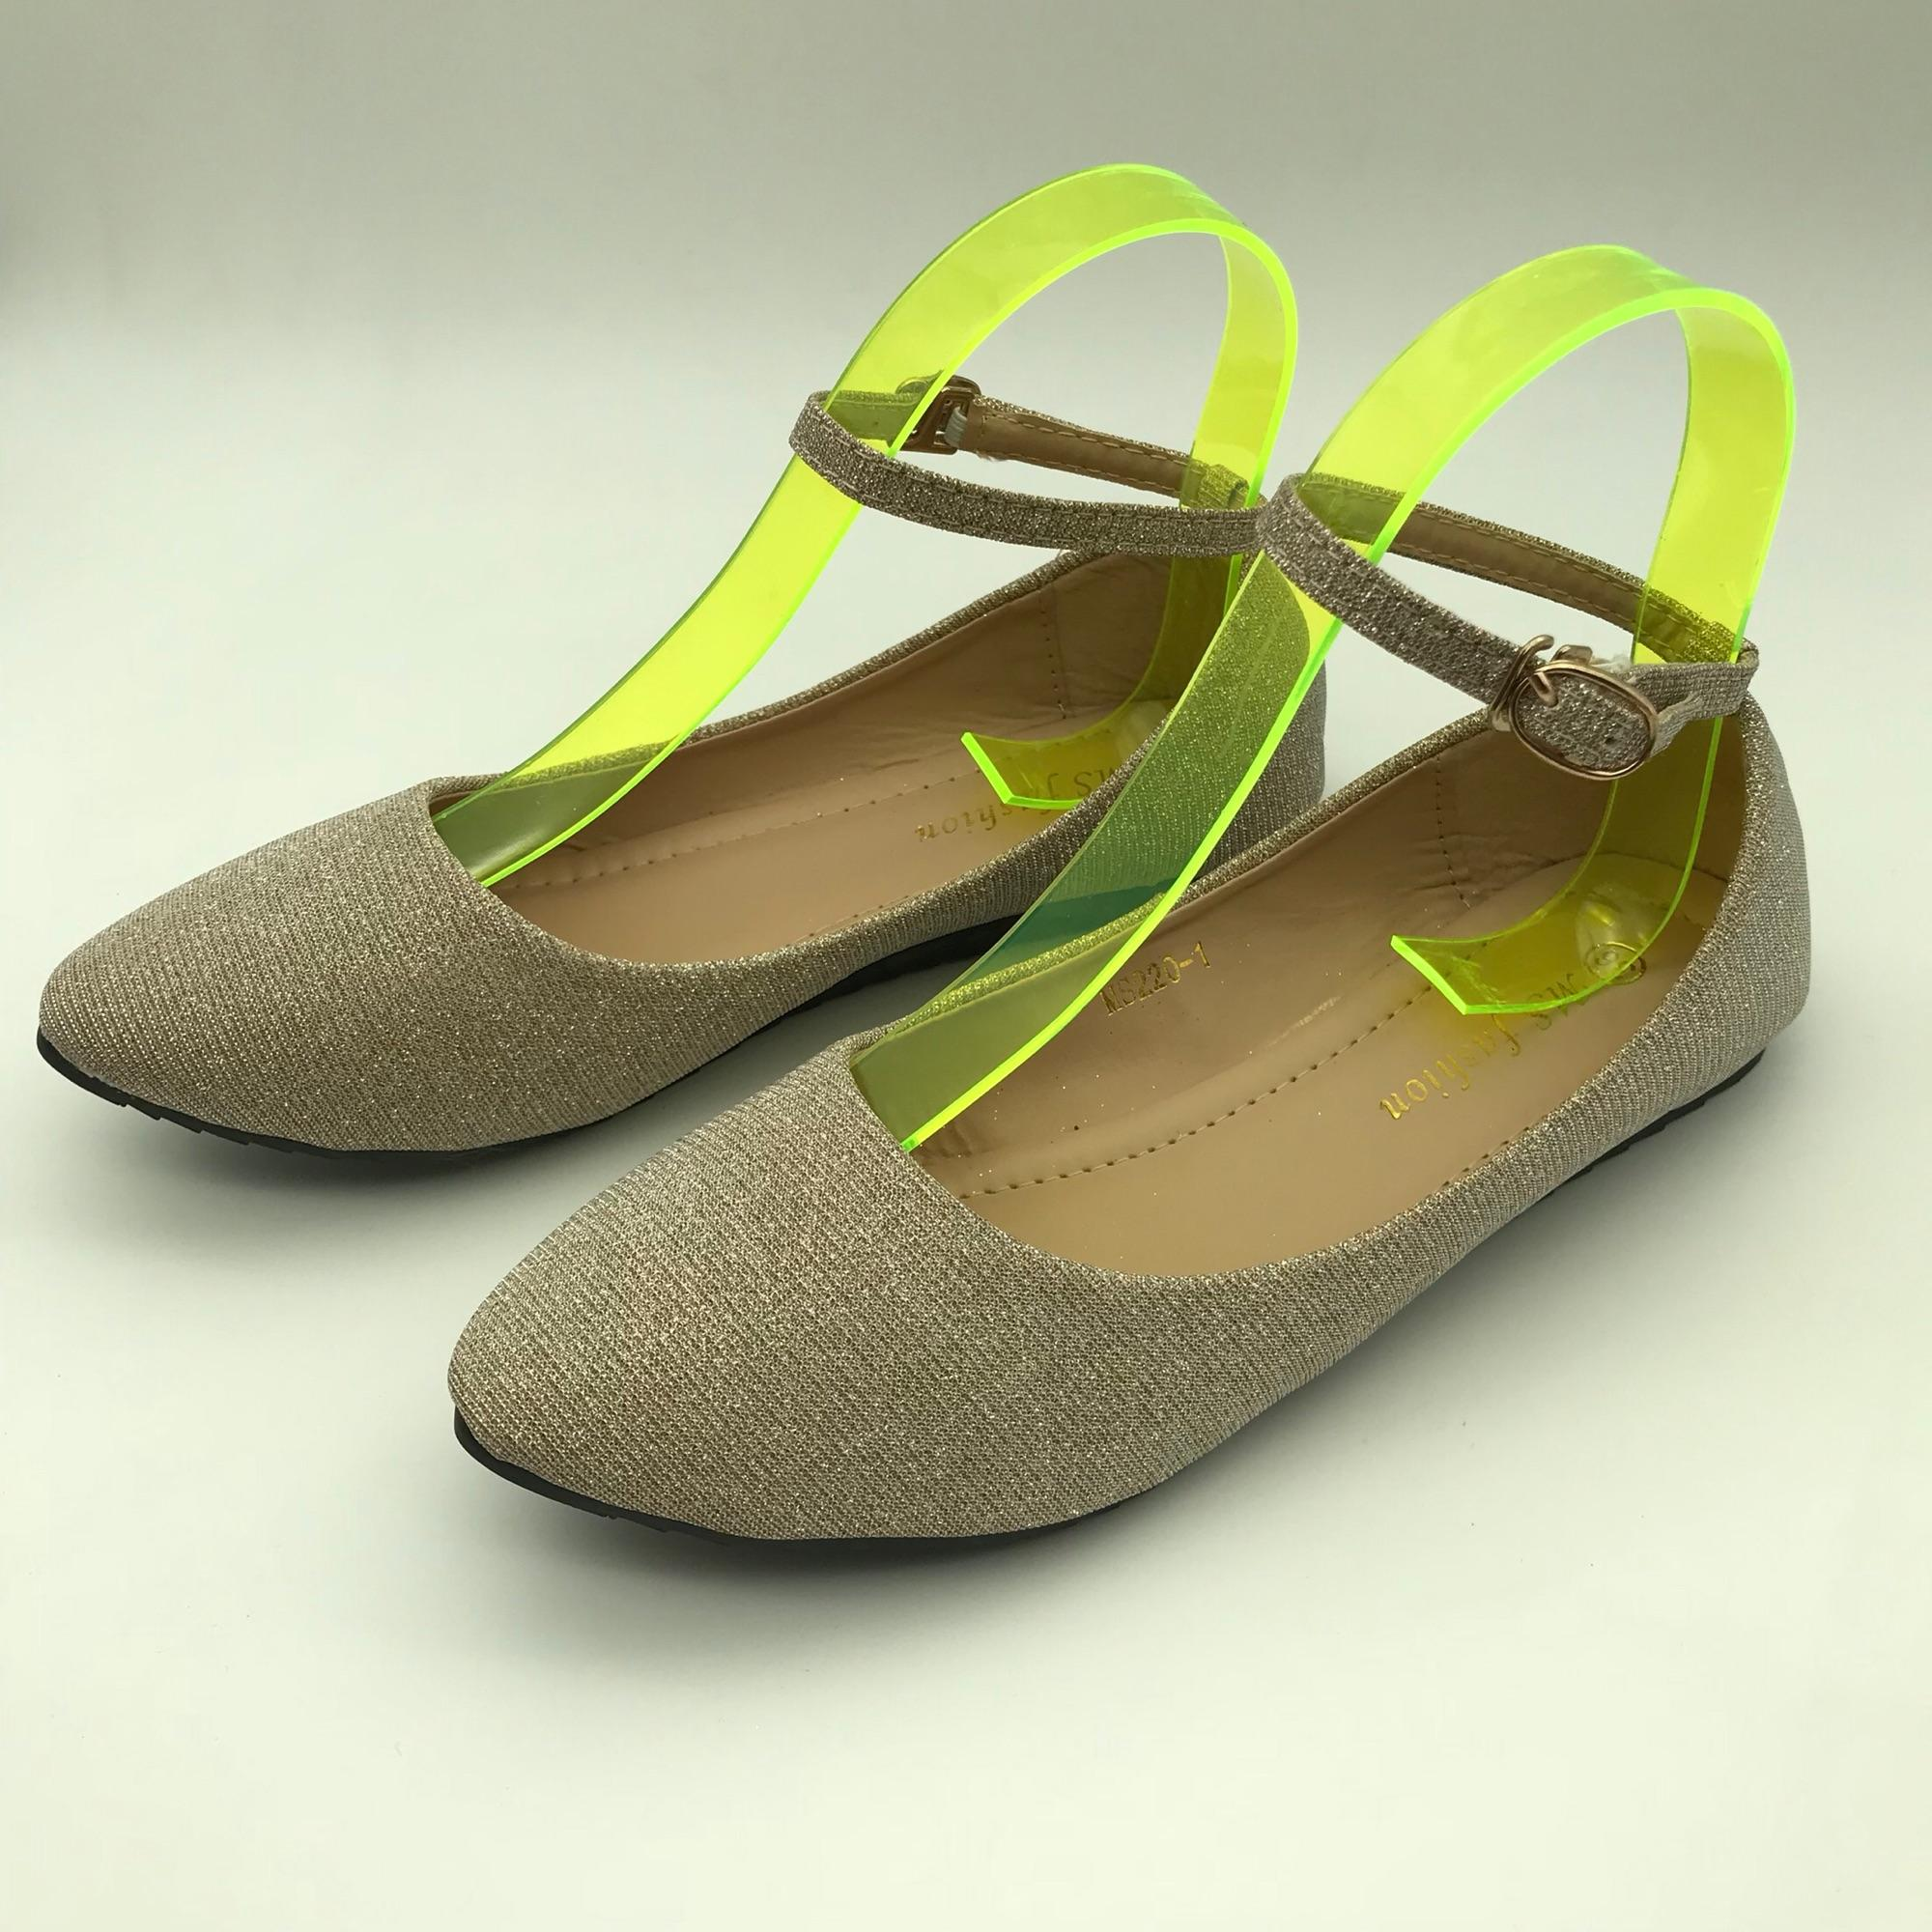 Womens Ballet Shoes for sale Ballet Flats online brands prices